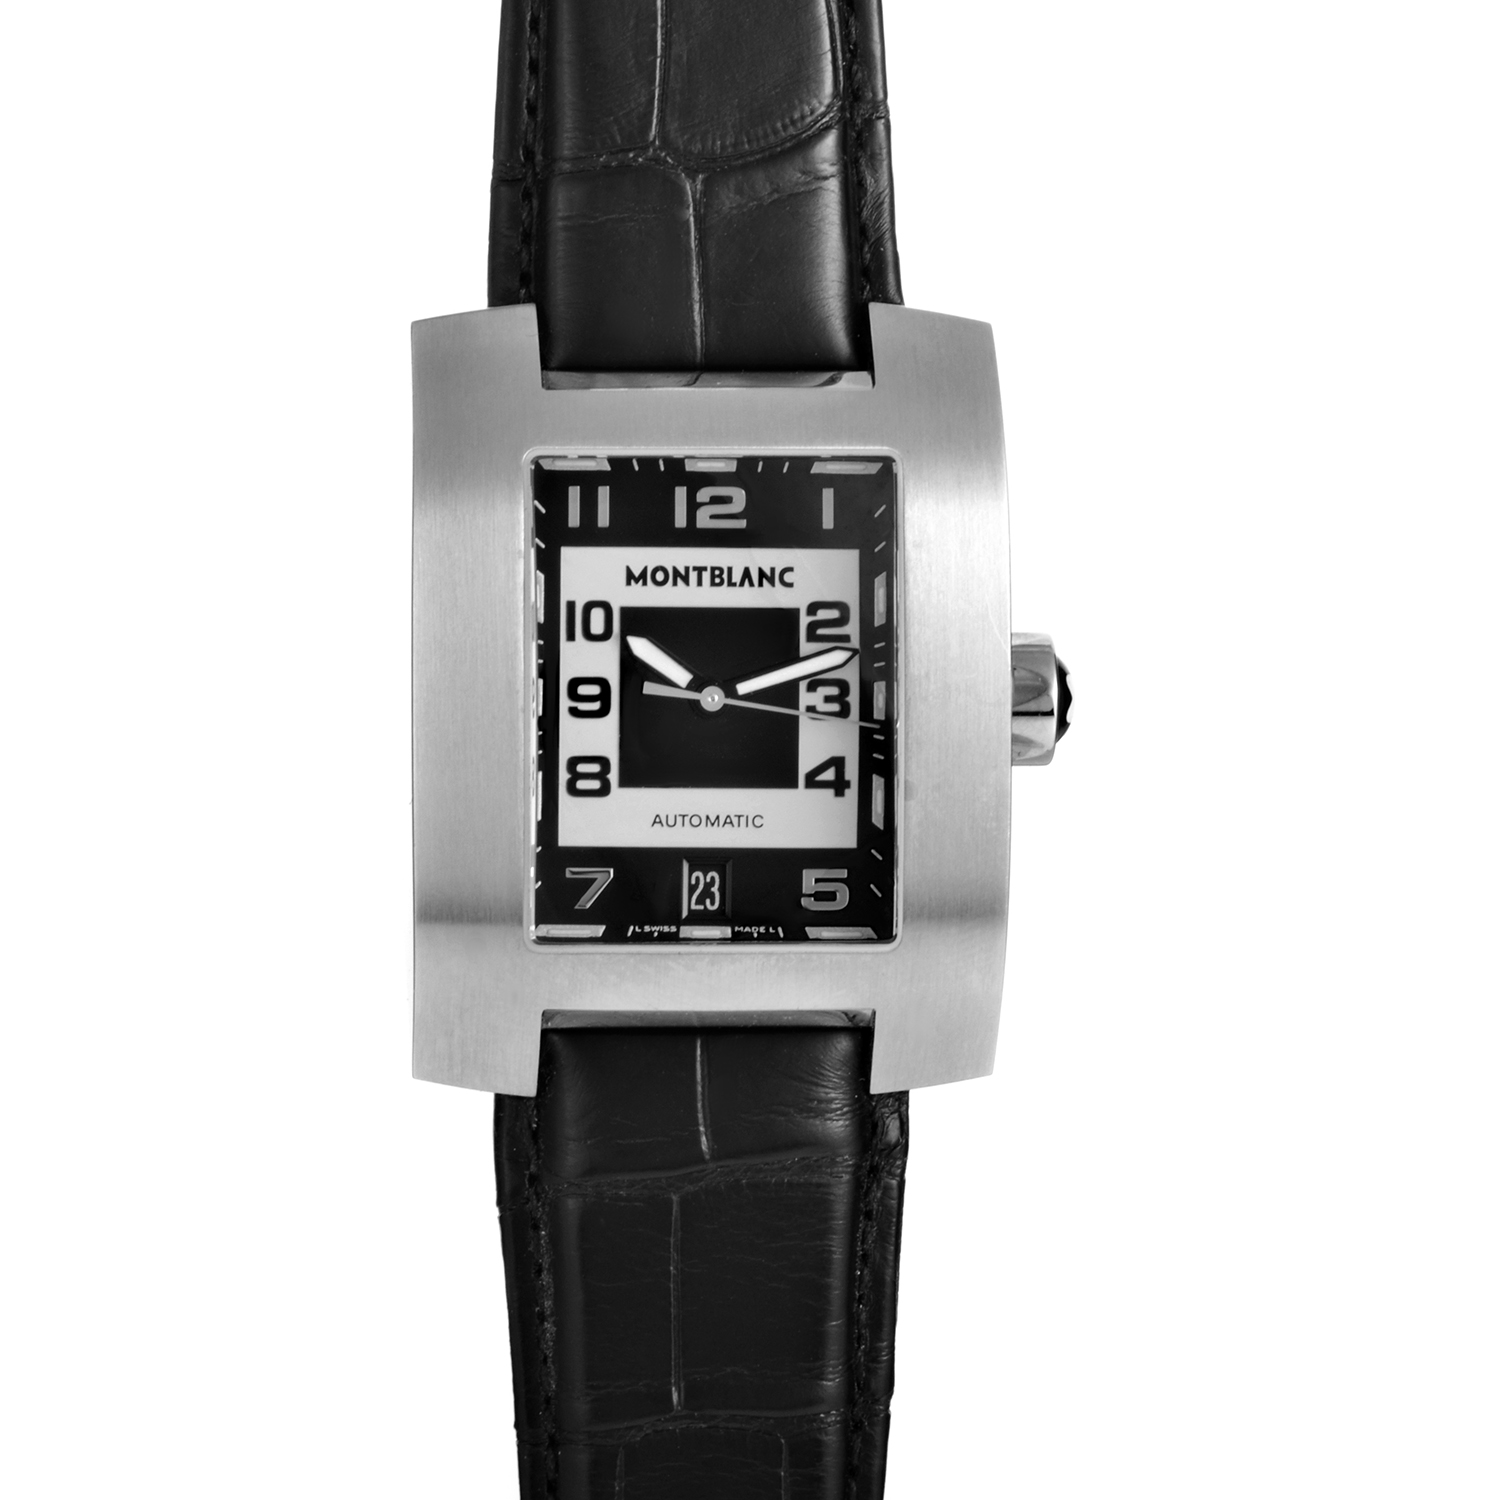 Gents Stainless Steel Automatic Watch 7058